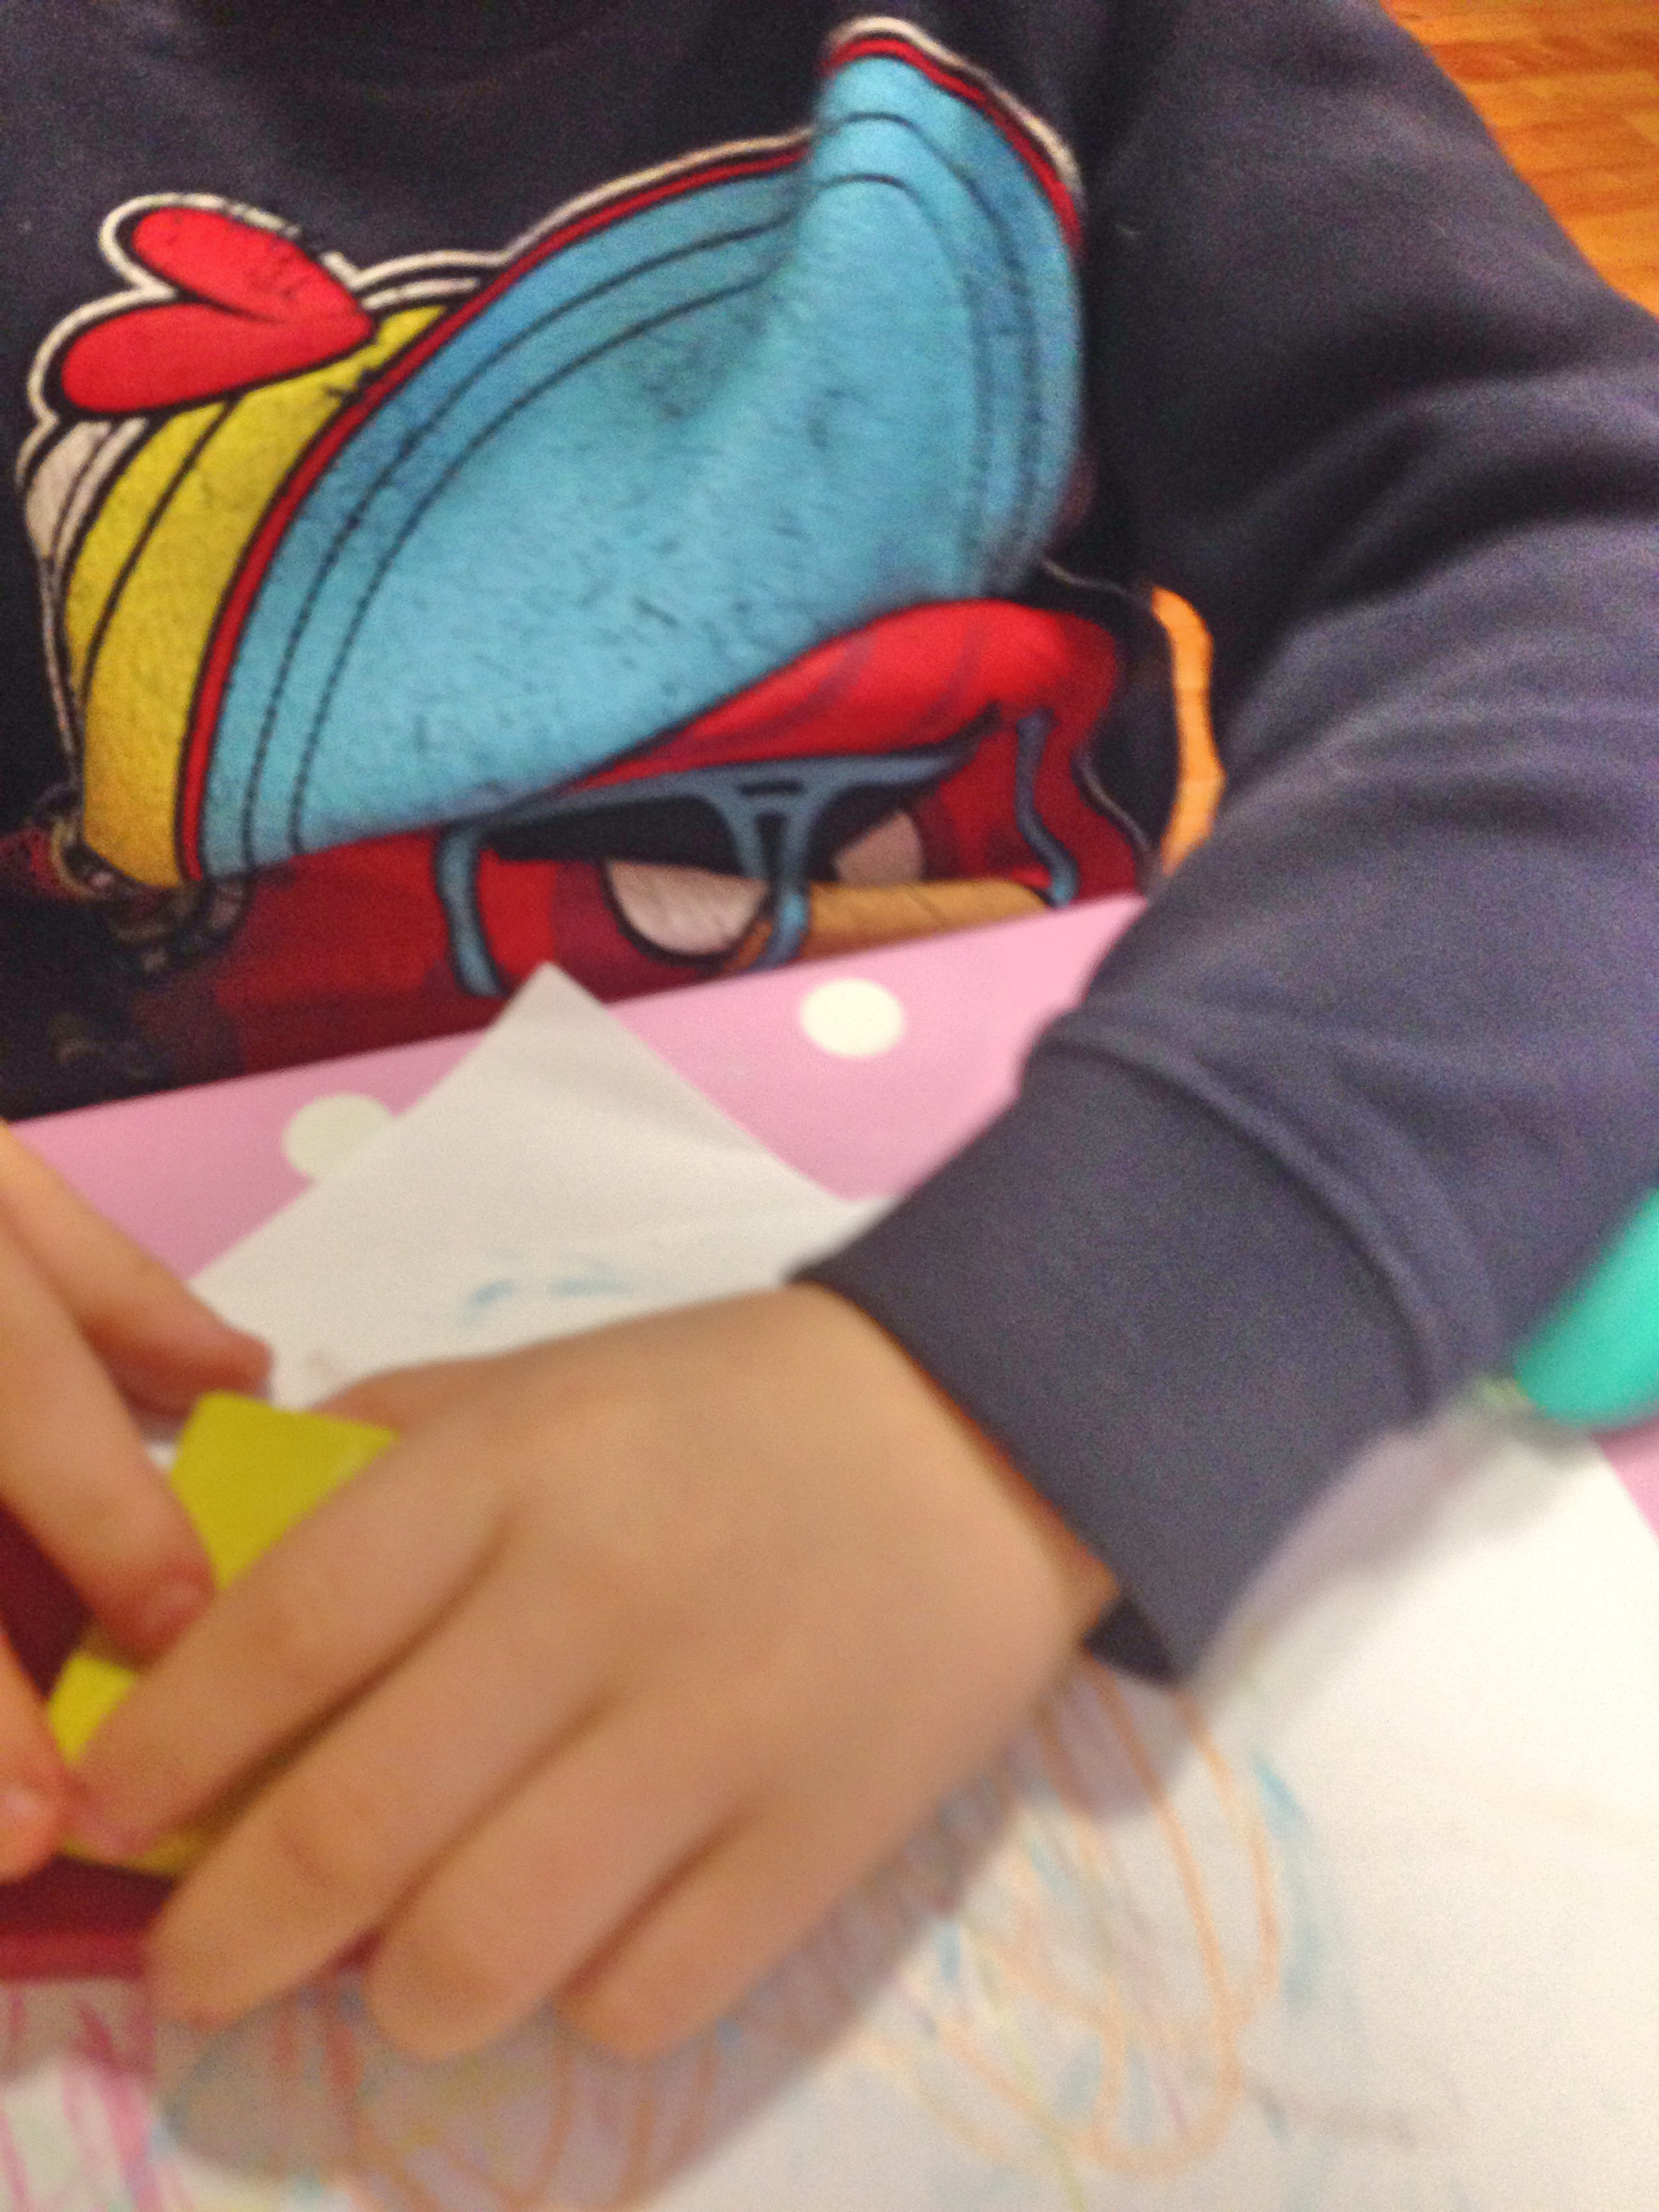 Holding the crayon using the Palmer Grasp.